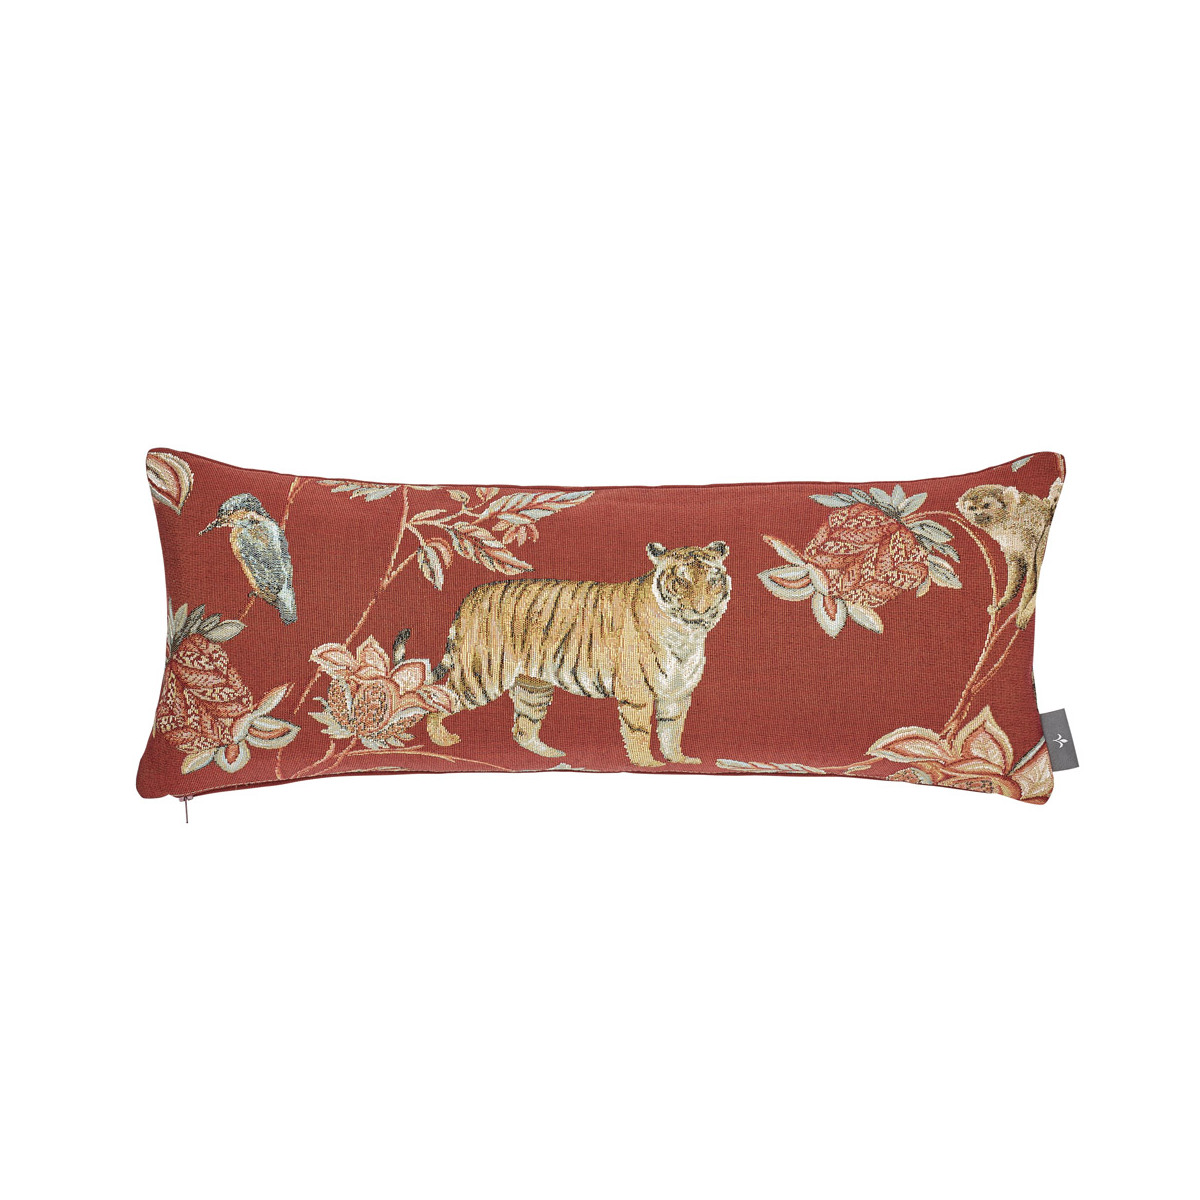 Coussin tapisserie indiennes made in france rouge 25x60